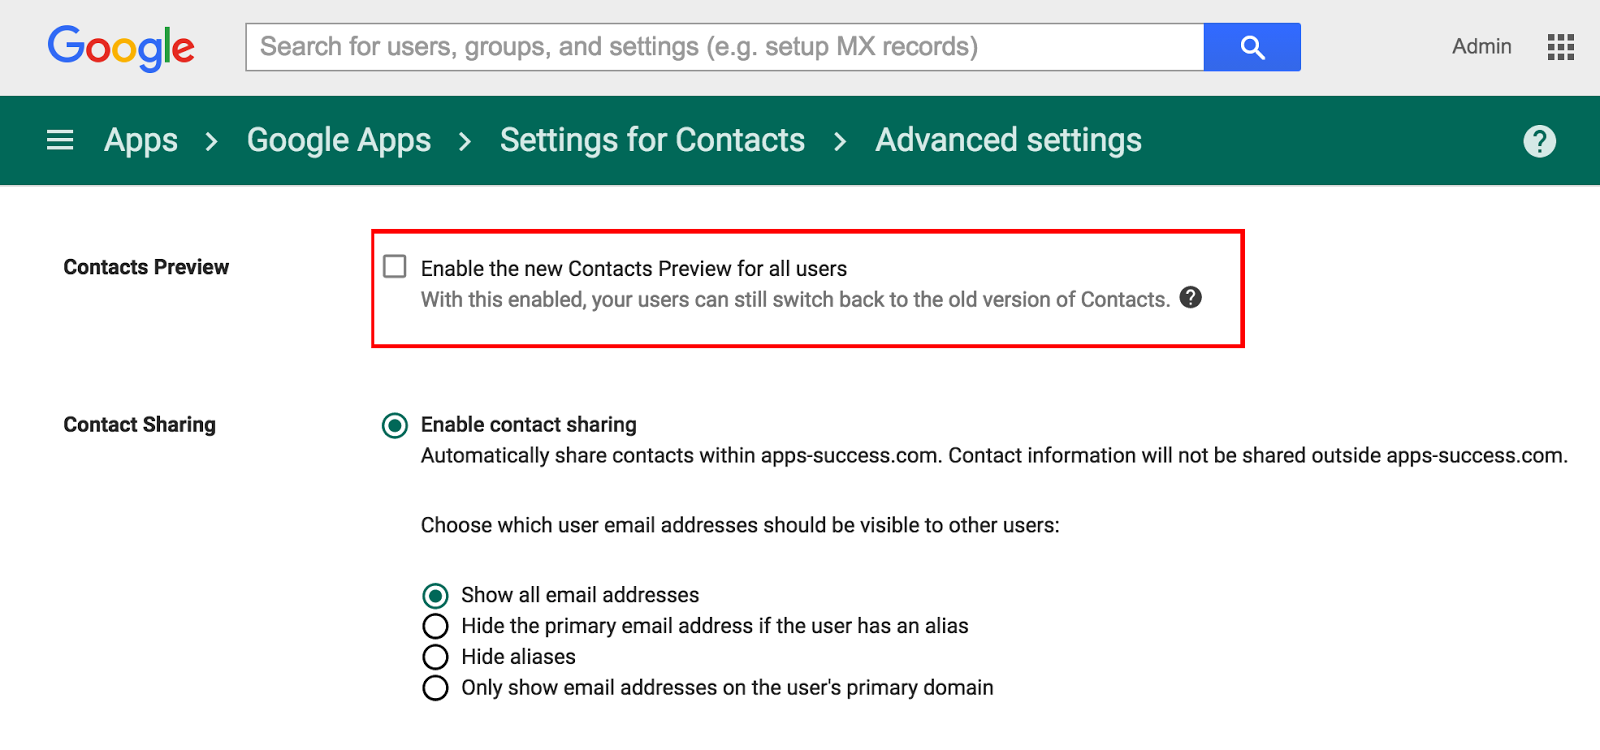 G Suite Updates Blog: Contact importing now available in the